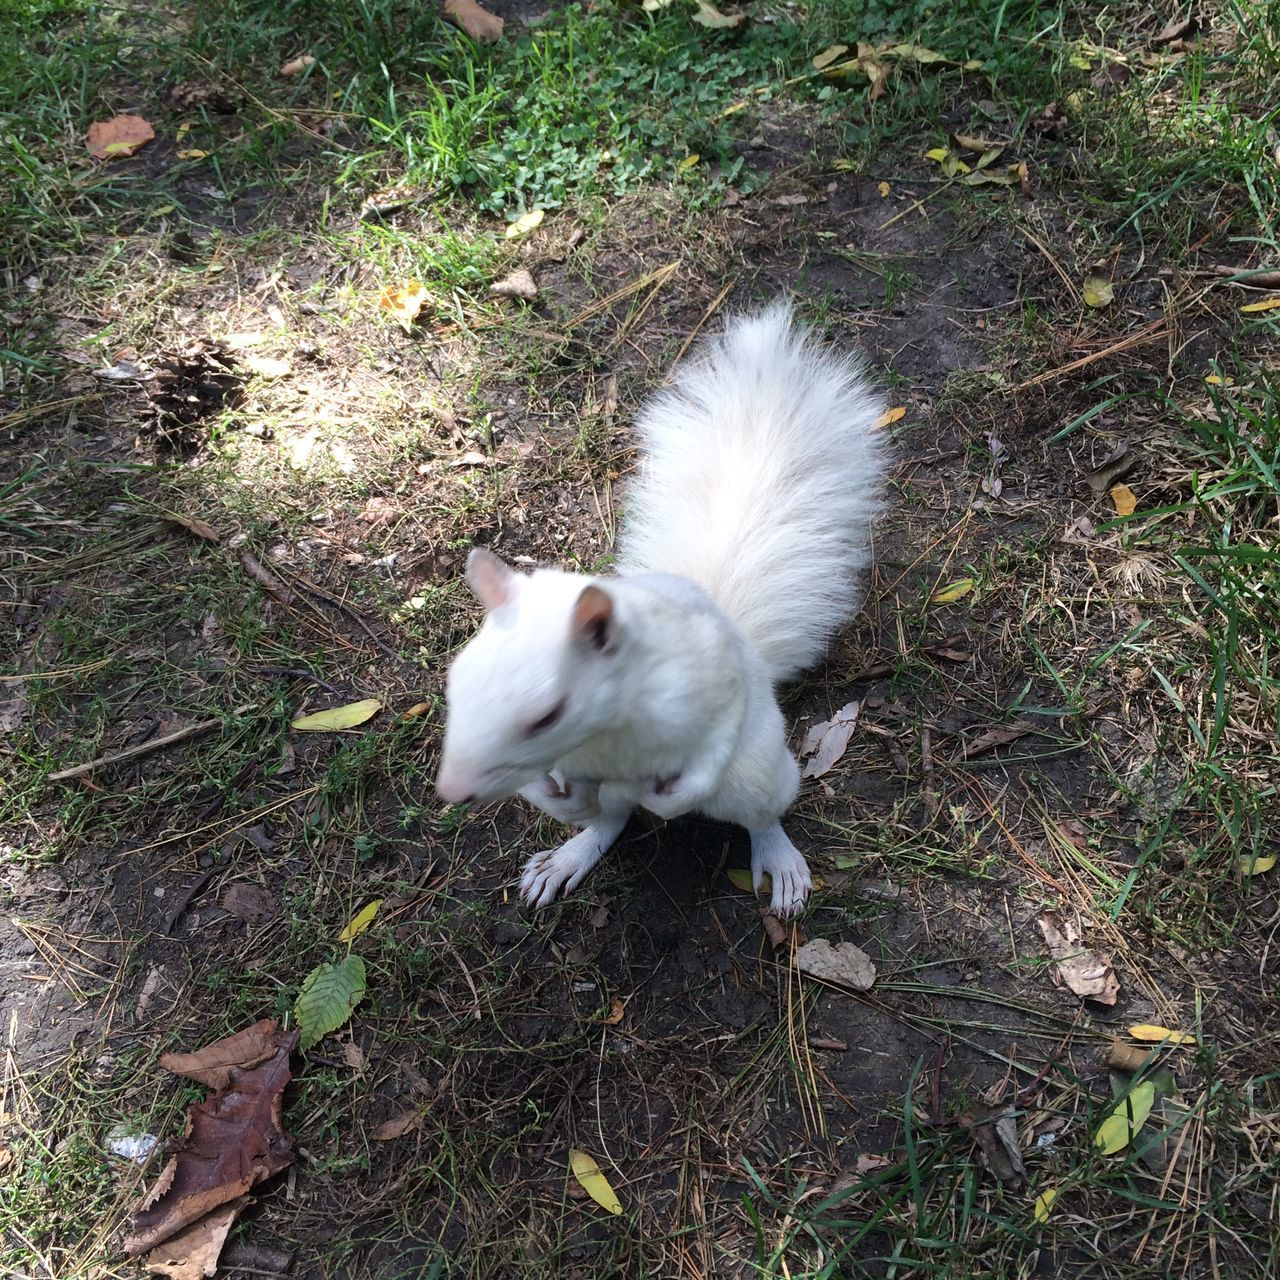 Albino Squirrel Animal Head  Animal Themes Canada Close Up Street Photography Domestic Animals No People One Animal Outdoors White White Squirrel リス クローズアップ 珍しいリス 白い動物 白リス 赤い目のリス